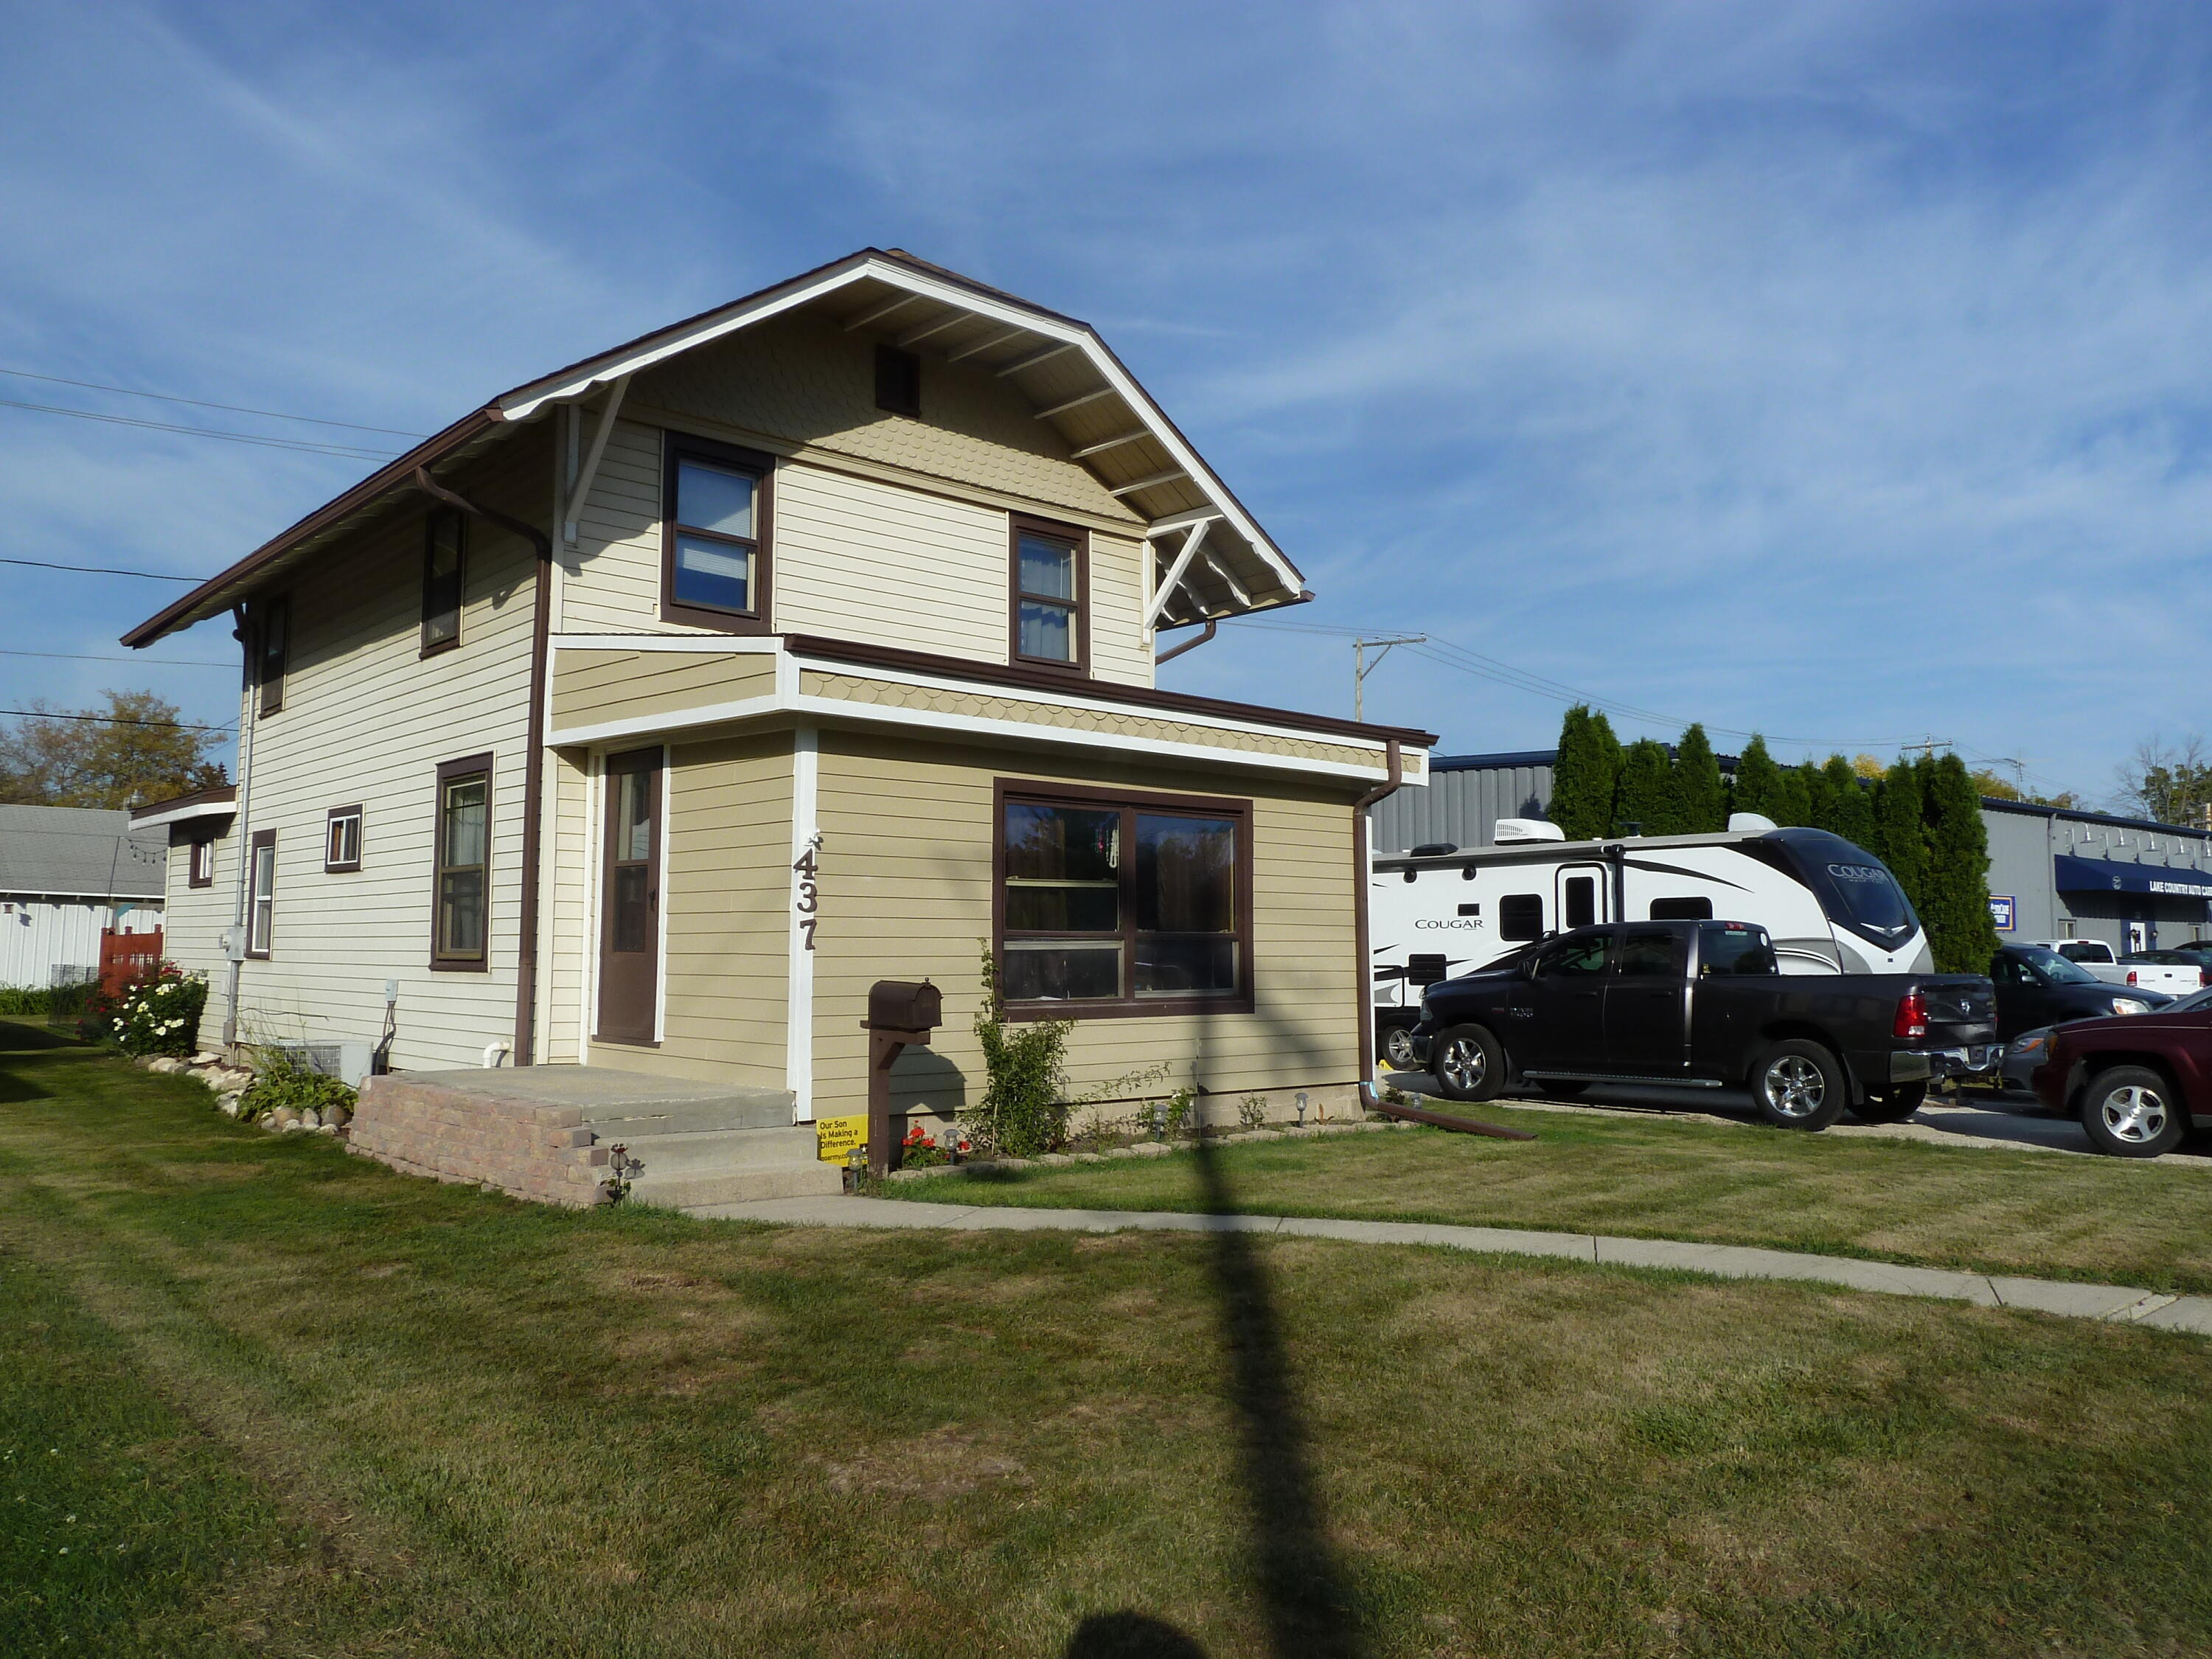 437 Hickory St, Pewaukee, Wisconsin 53072, 3 Bedrooms Bedrooms, 6 Rooms Rooms,1 BathroomBathrooms,Single-Family,For Sale,Hickory St,1765924